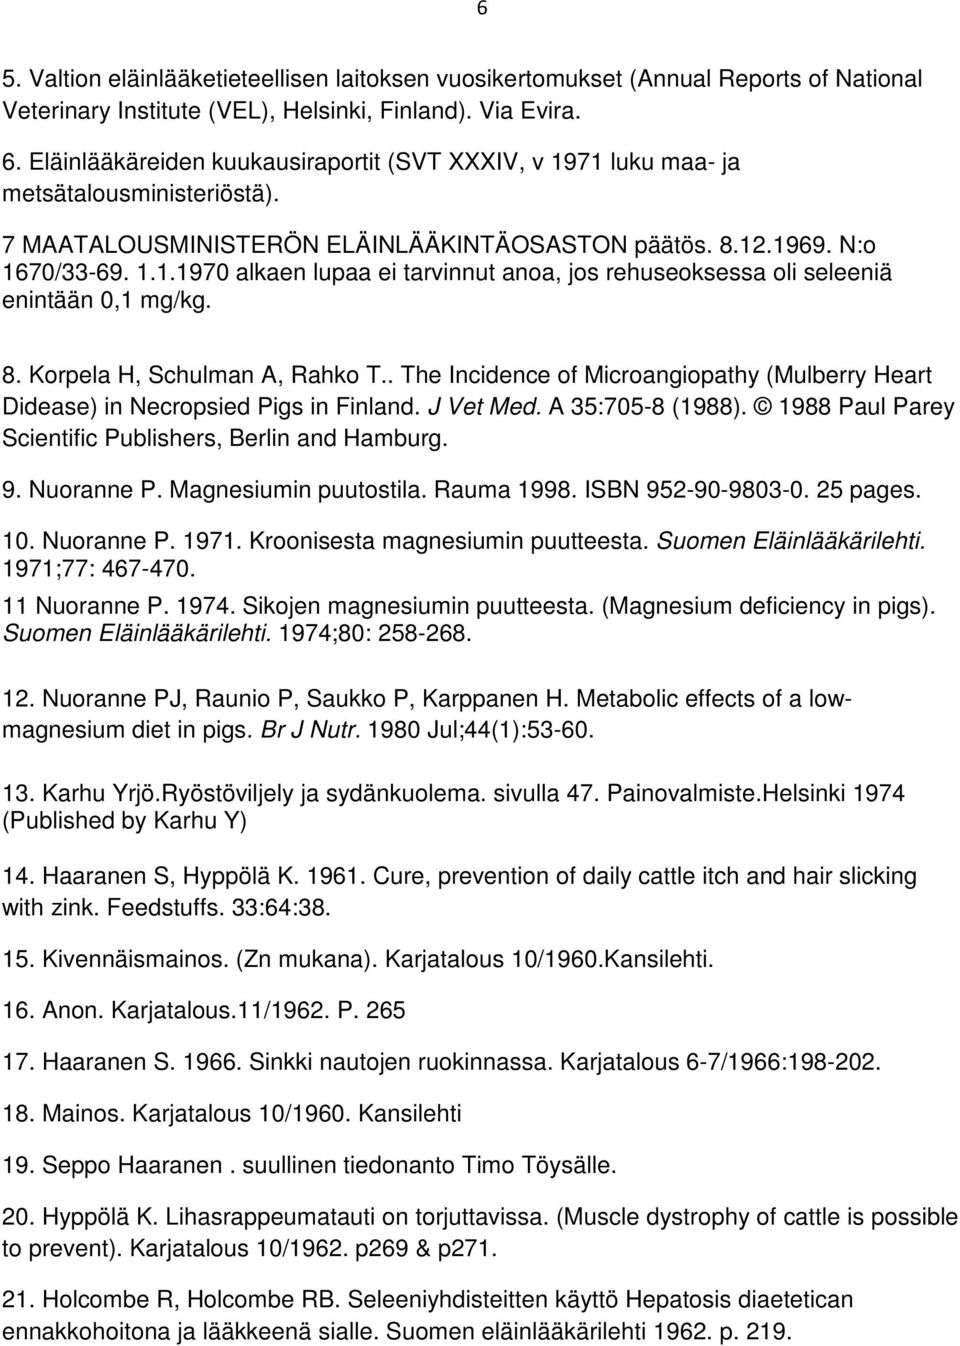 8. Korpela H, Schulman A, Rahko T.. The Incidence of Microangiopathy (Mulberry Heart Didease) in Necropsied Pigs in Finland. J Vet Med. A 35:705-8 (1988).